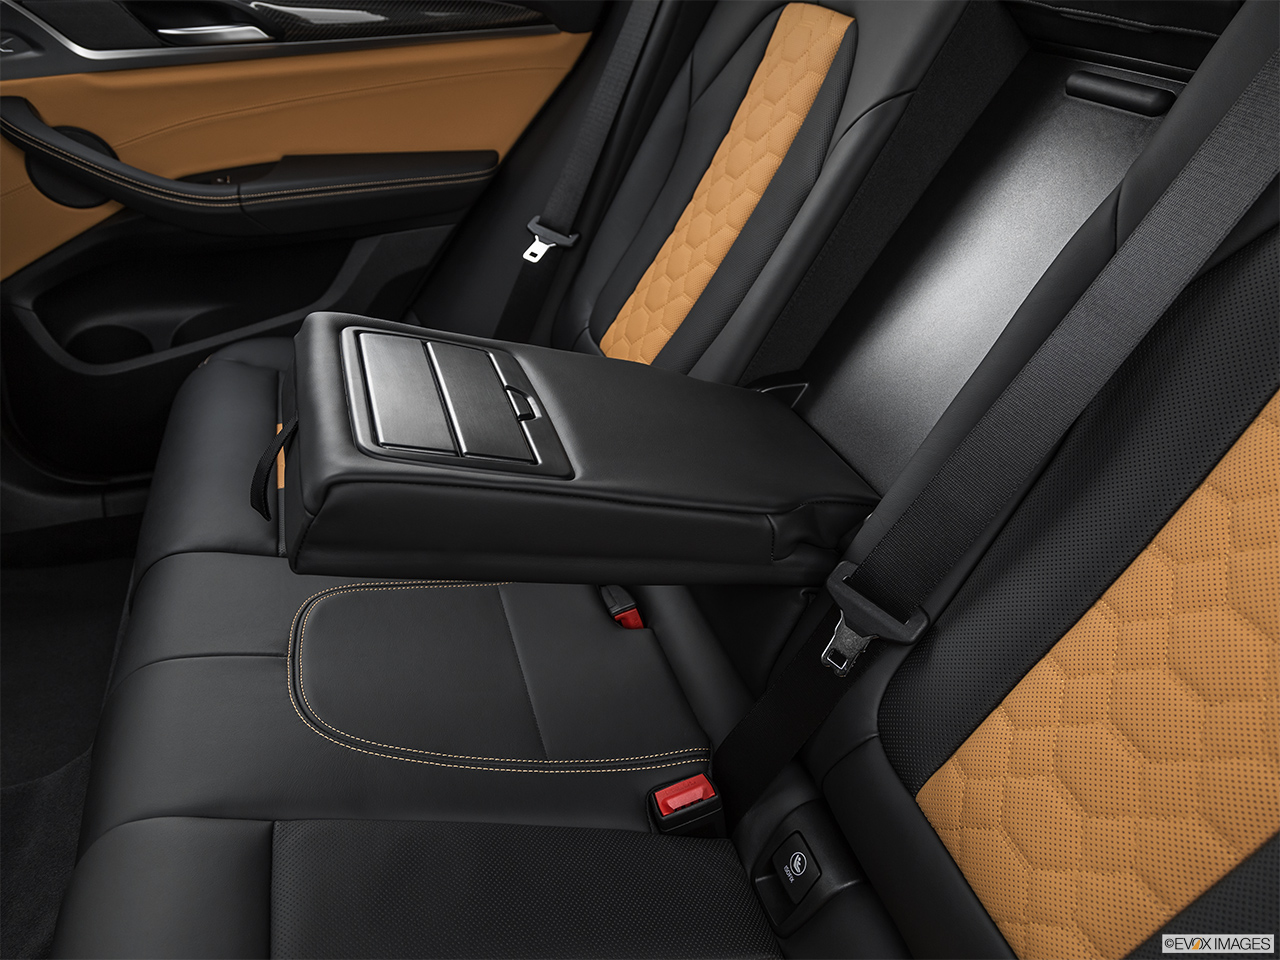 2020 BMW X3 M Competition Rear center console with closed lid from driver's side looking down.